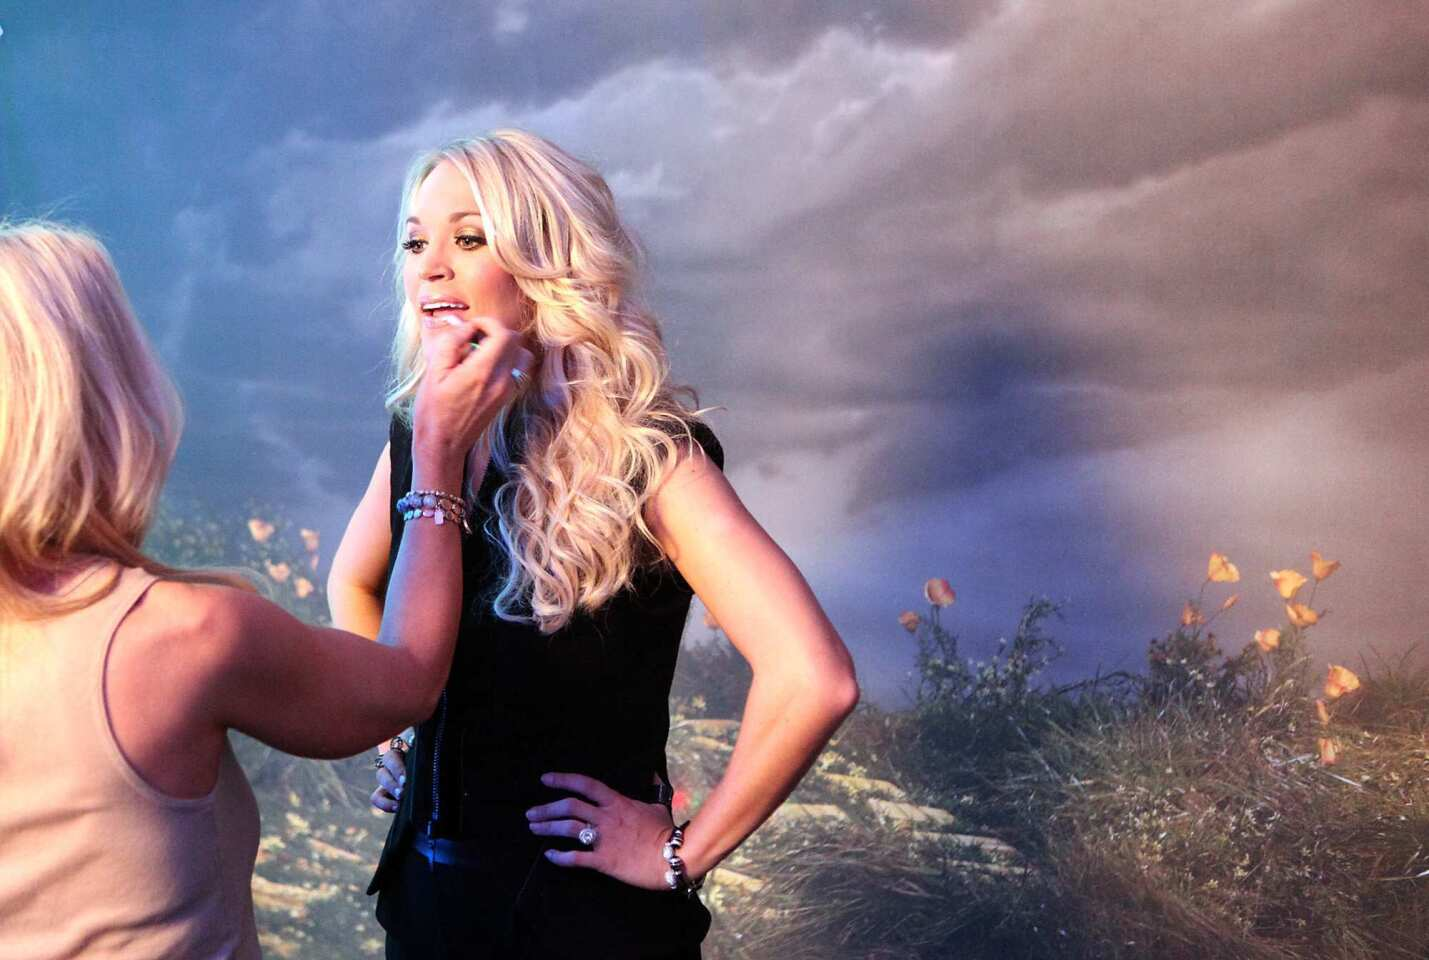 Carrie Underwood gets her makeup touched up before posing for fan pictures backstage prior to her concert at Staples Center Oct. 16, 2012.